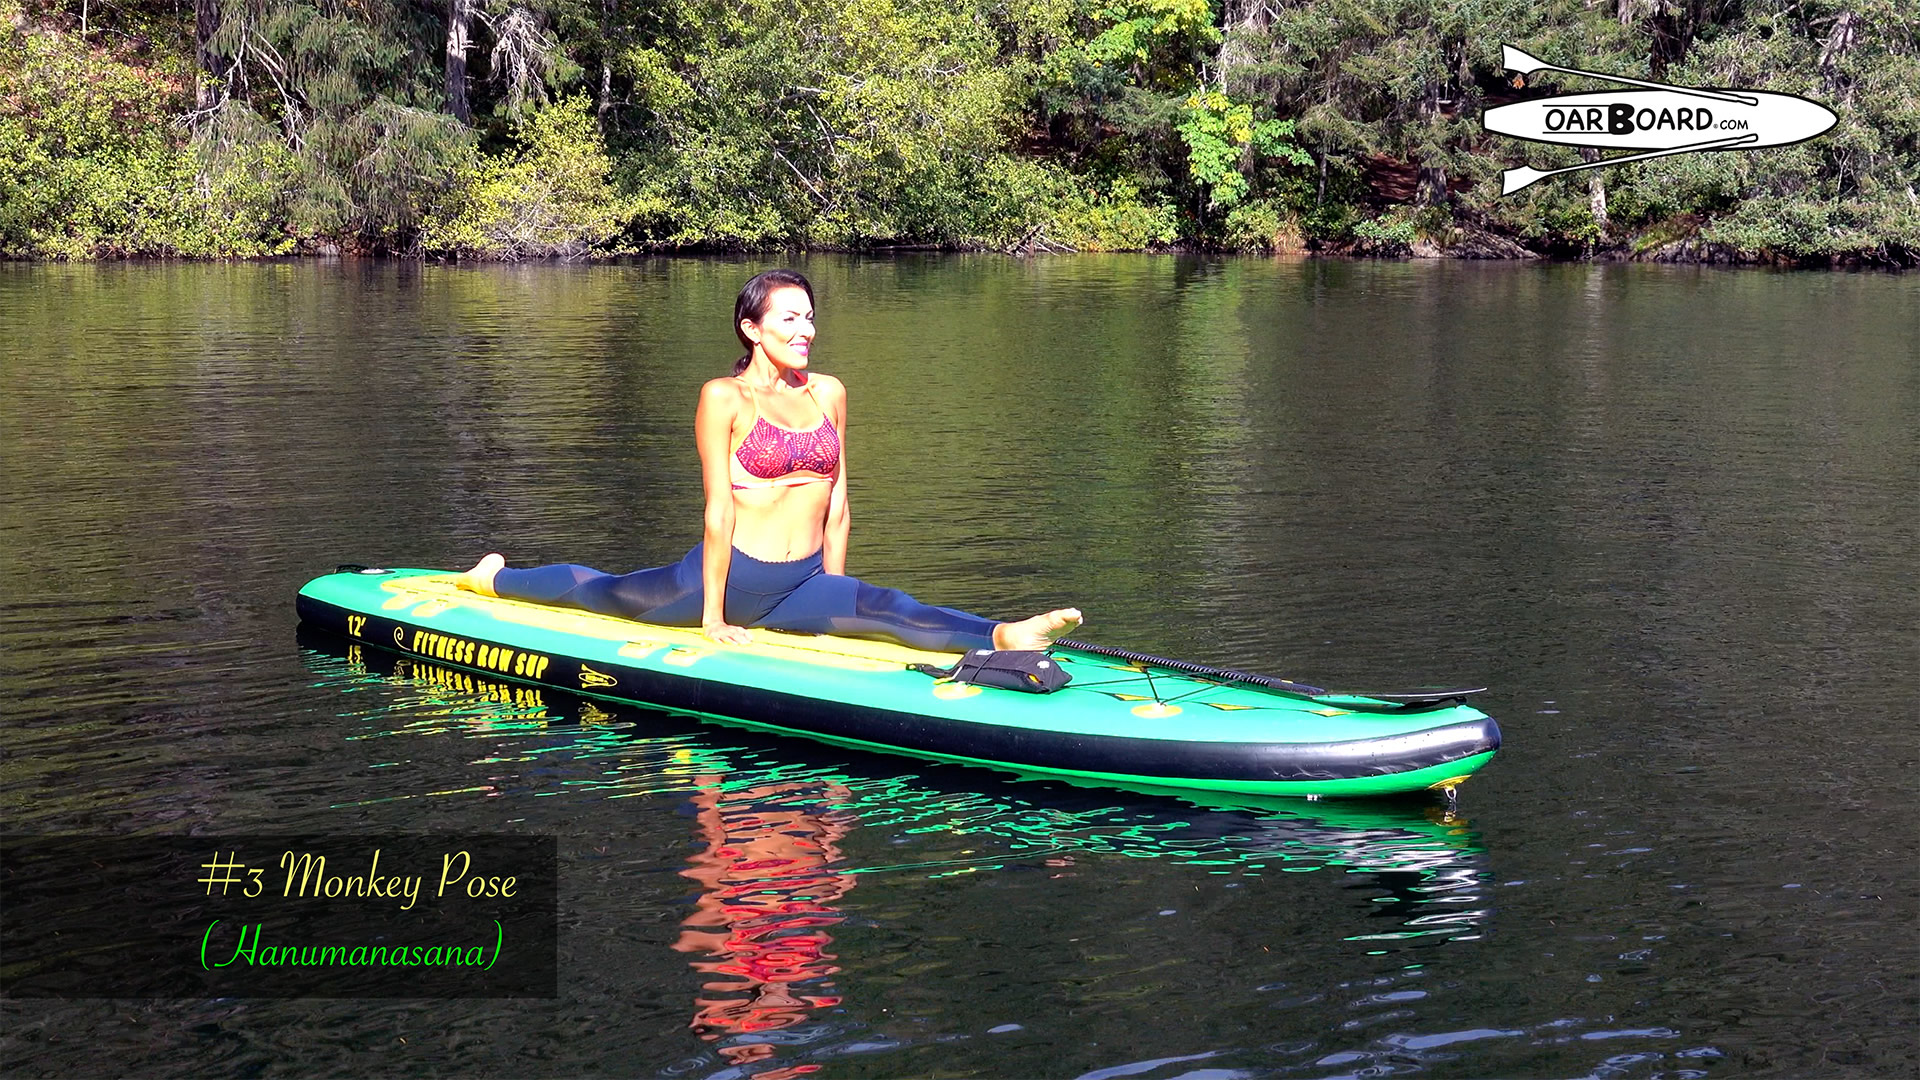 Oar-Board-Fit-12-Stand-Up-Paddle-Board-Yoga-3-Monkey-Pose